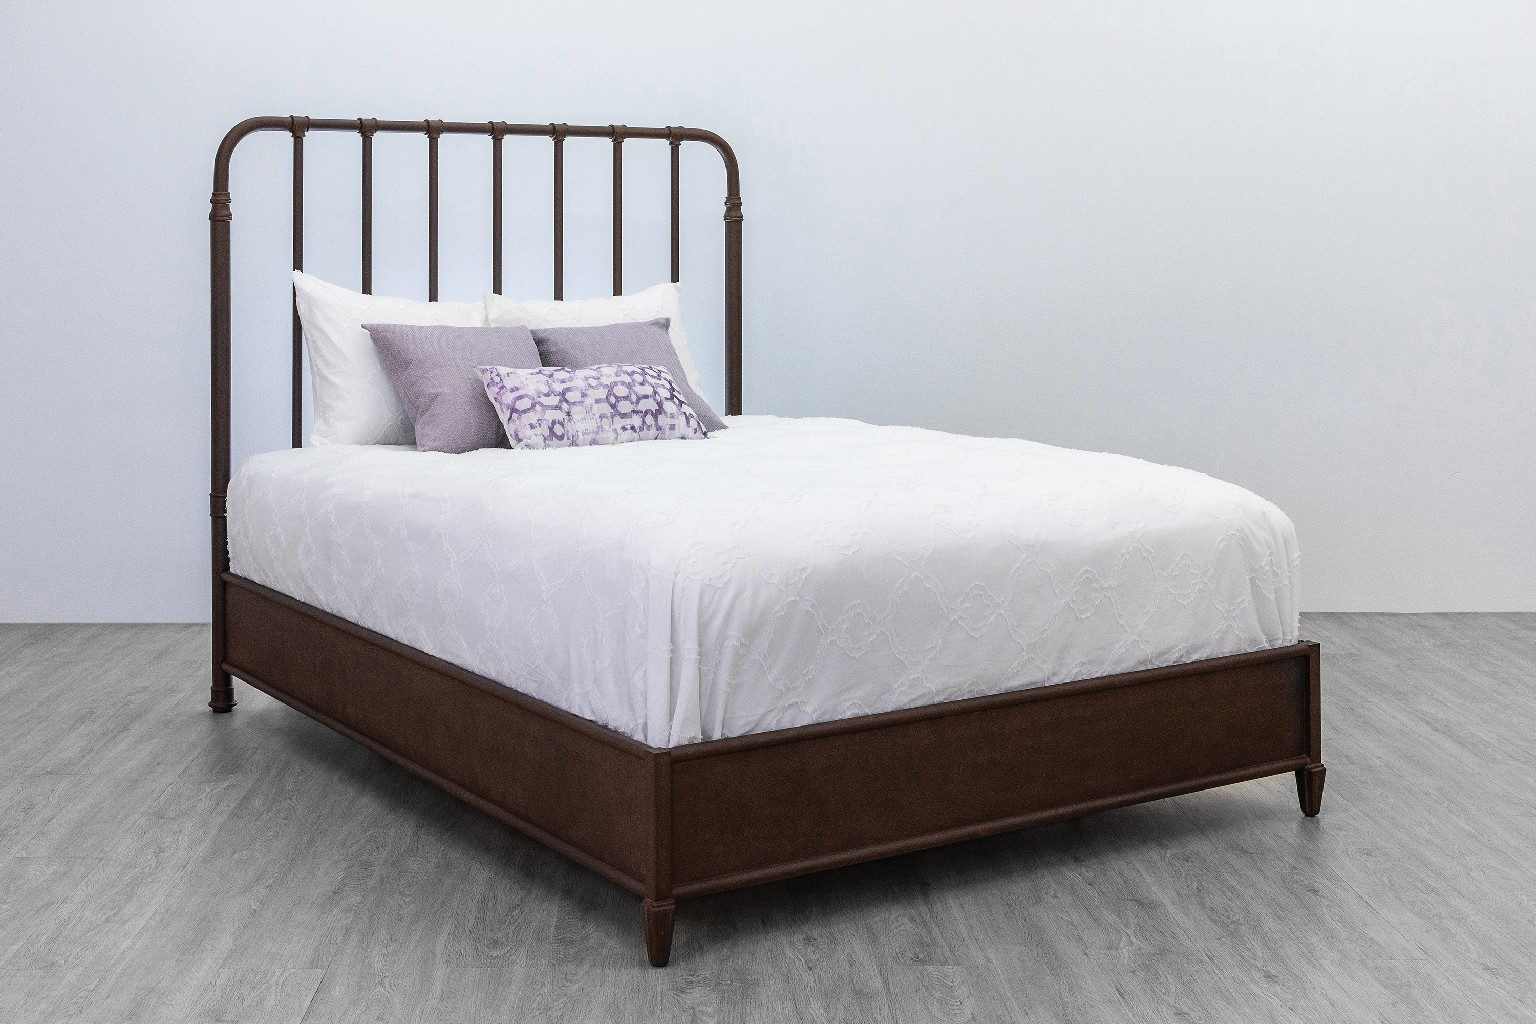 Andrea Metal Platform Bed w/ Headboard in Aged Rust Finish - Made in the U.S.A - Taylor Gray Home 10356TGHHB